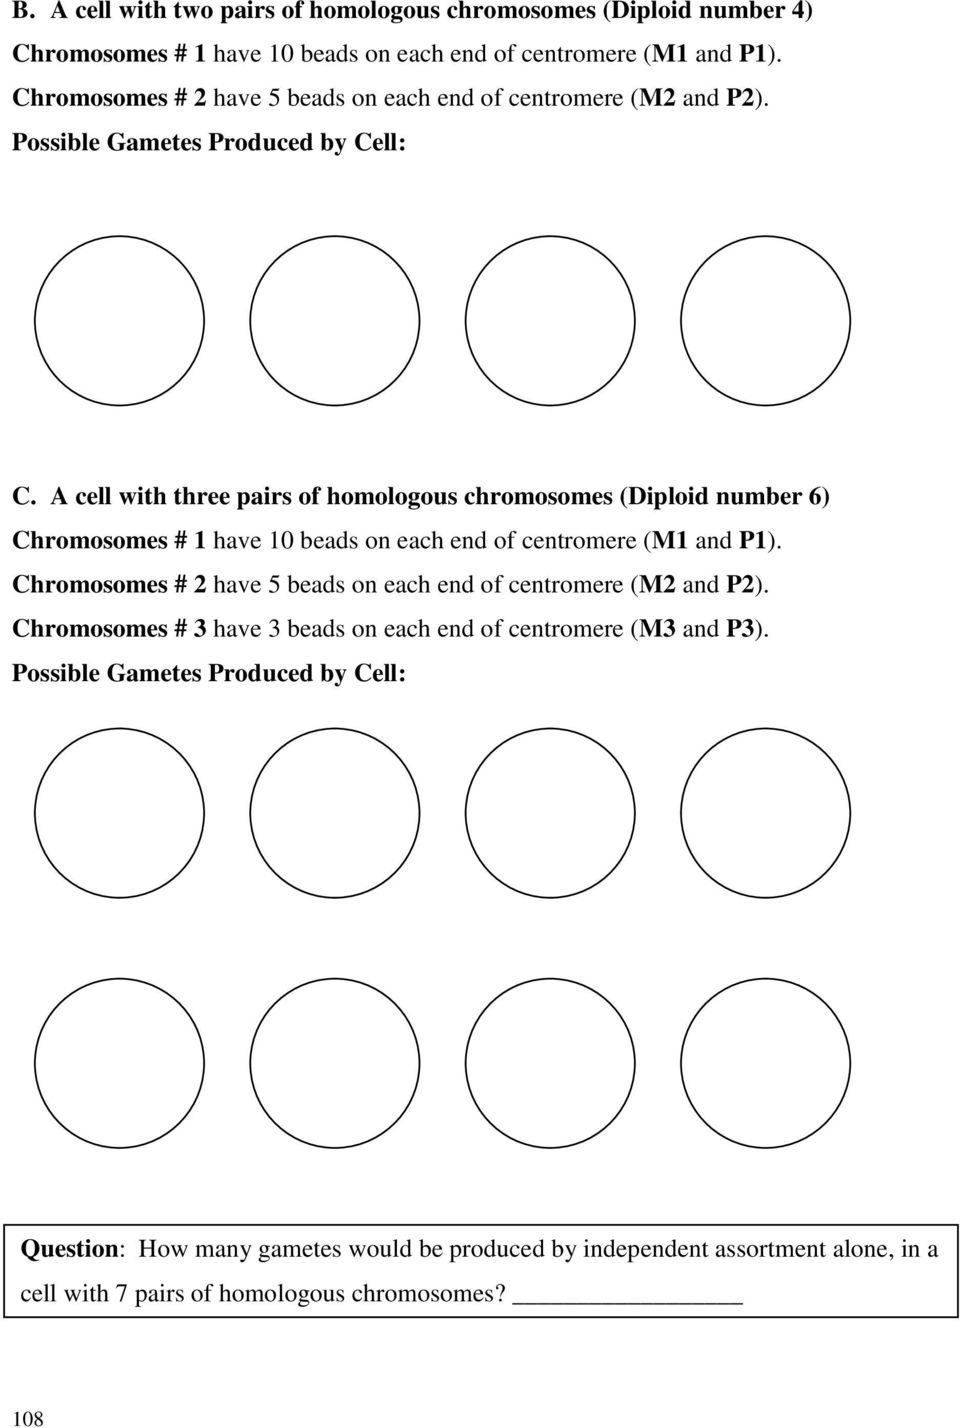 worksheet Onion Cell Mitosis Worksheet Answers lab 8 eukaryotic cell division mitosis and meiosis pdf a with three pairs of homologous chromosomes diploid number 6 1